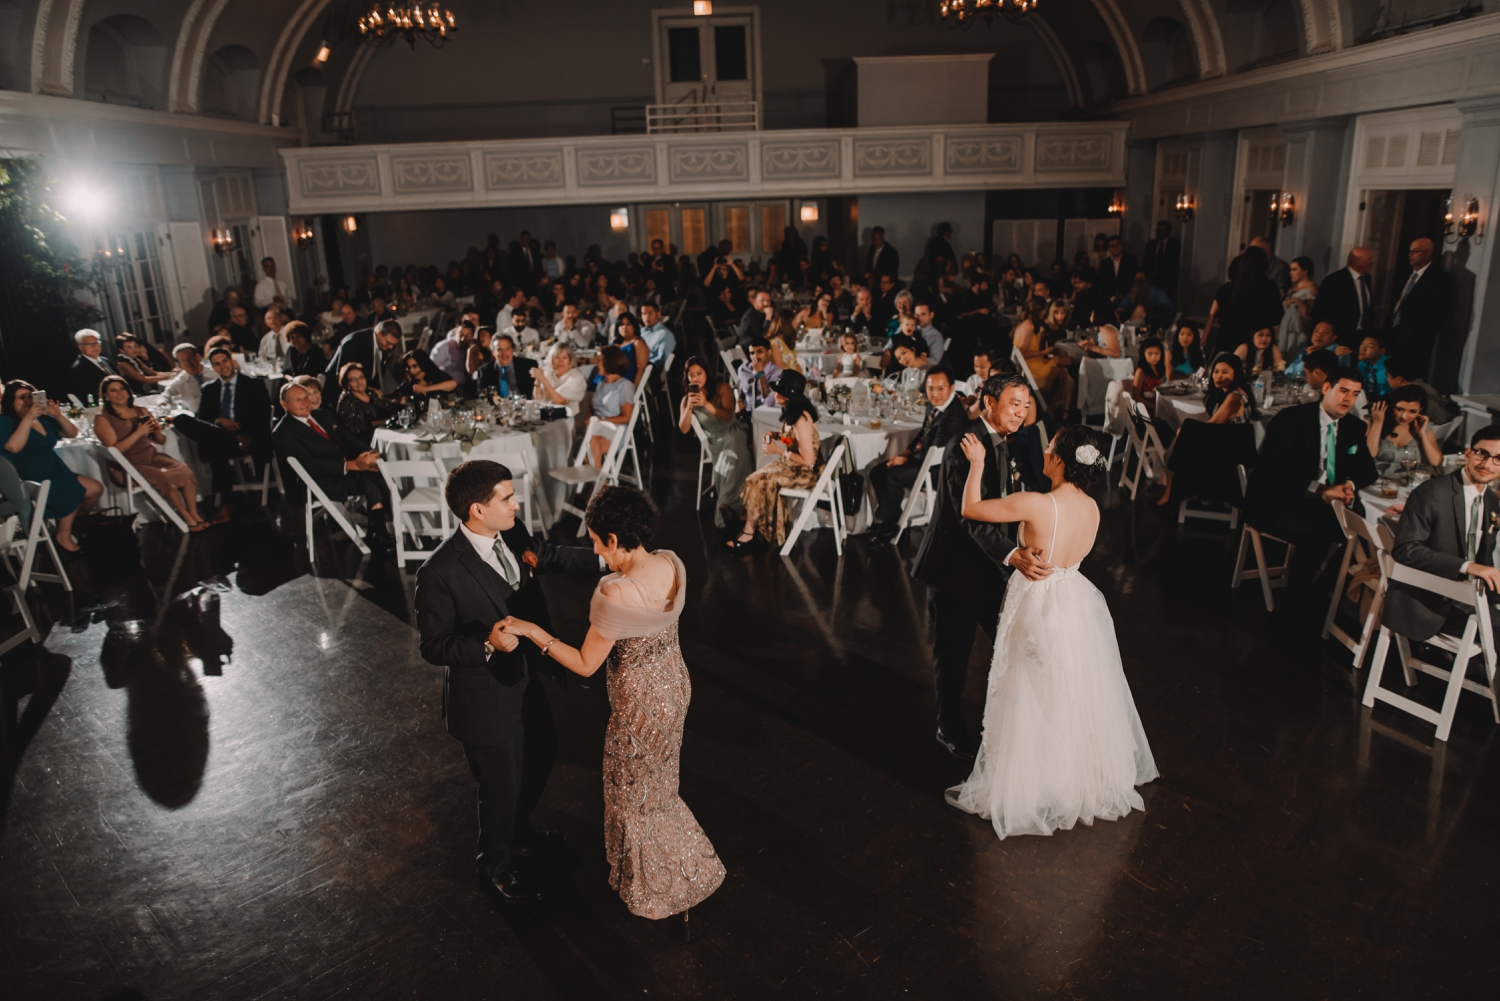 mather son, father daughter, first dance The Women's Club of Evanston Wedding Photographer - The Adamkovi, Chicago wedding Photographer